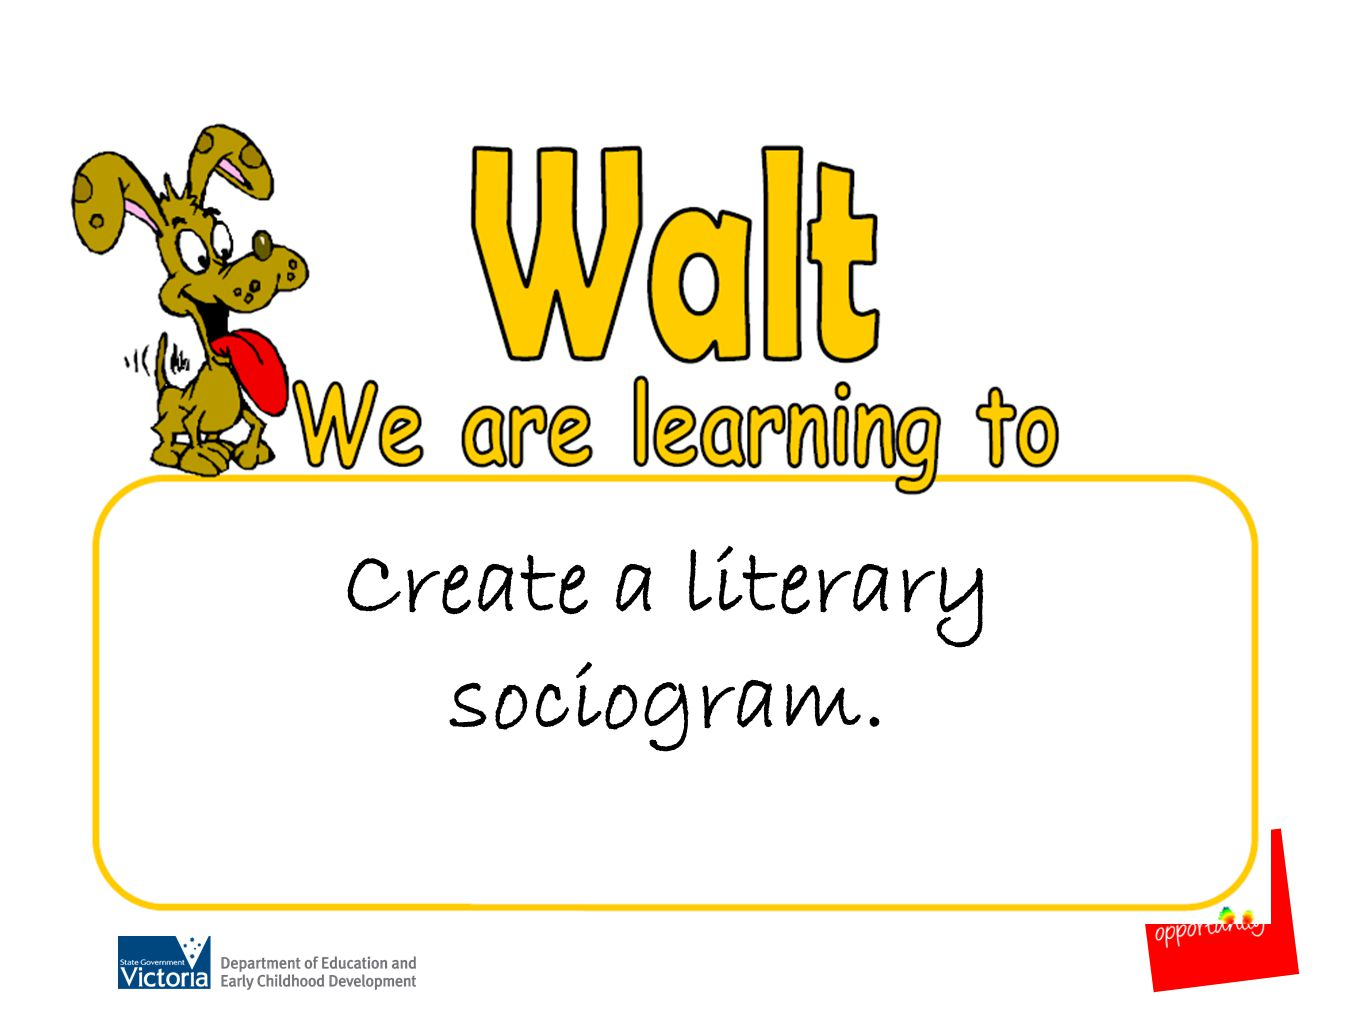 Create a literary sociogram.